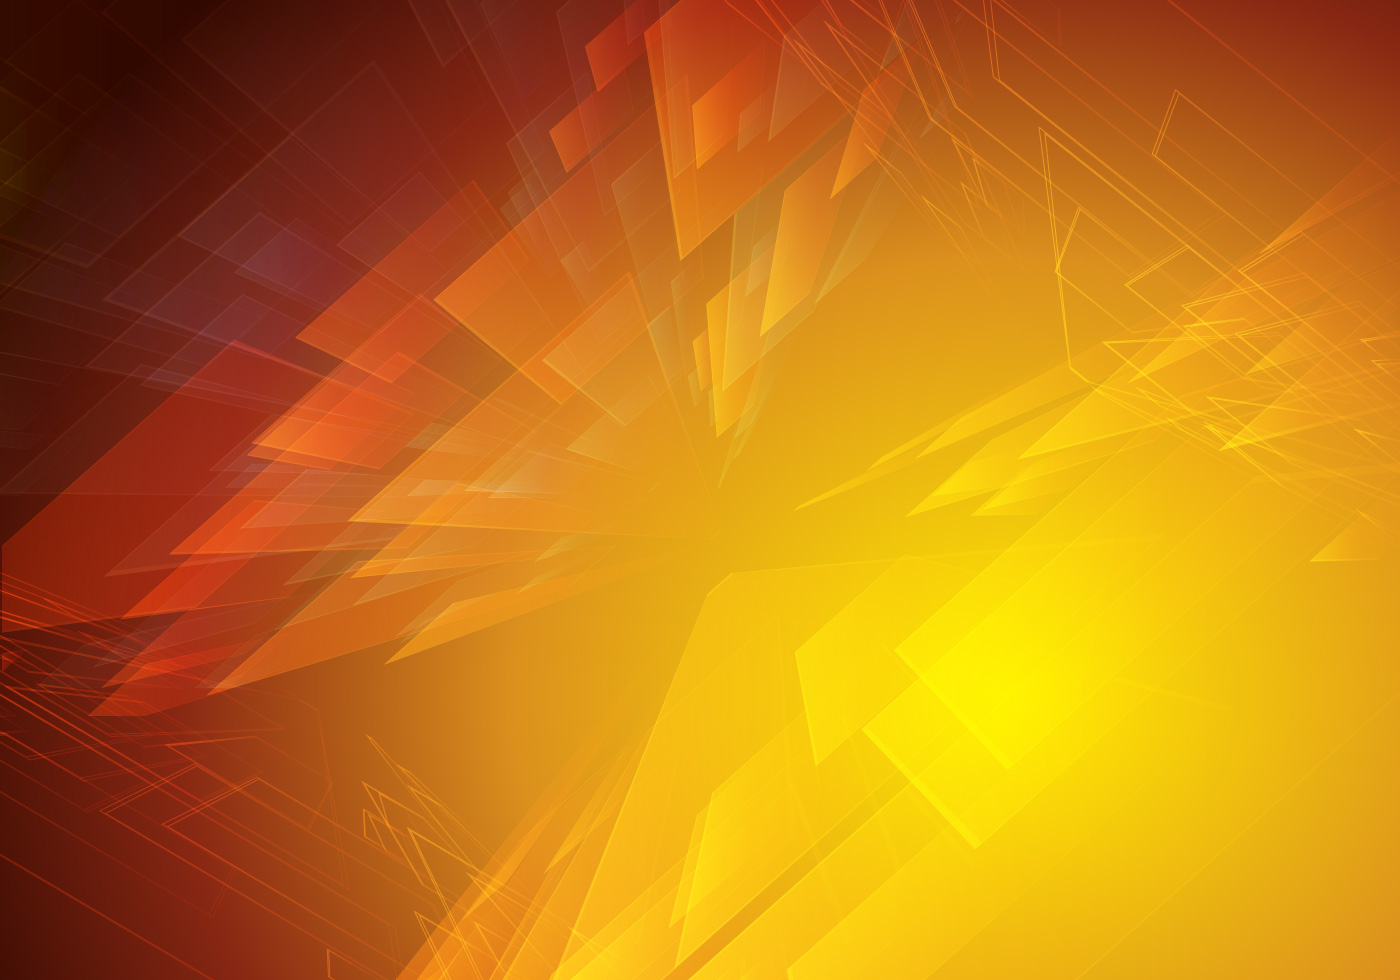 madmediaworker abstract background 02